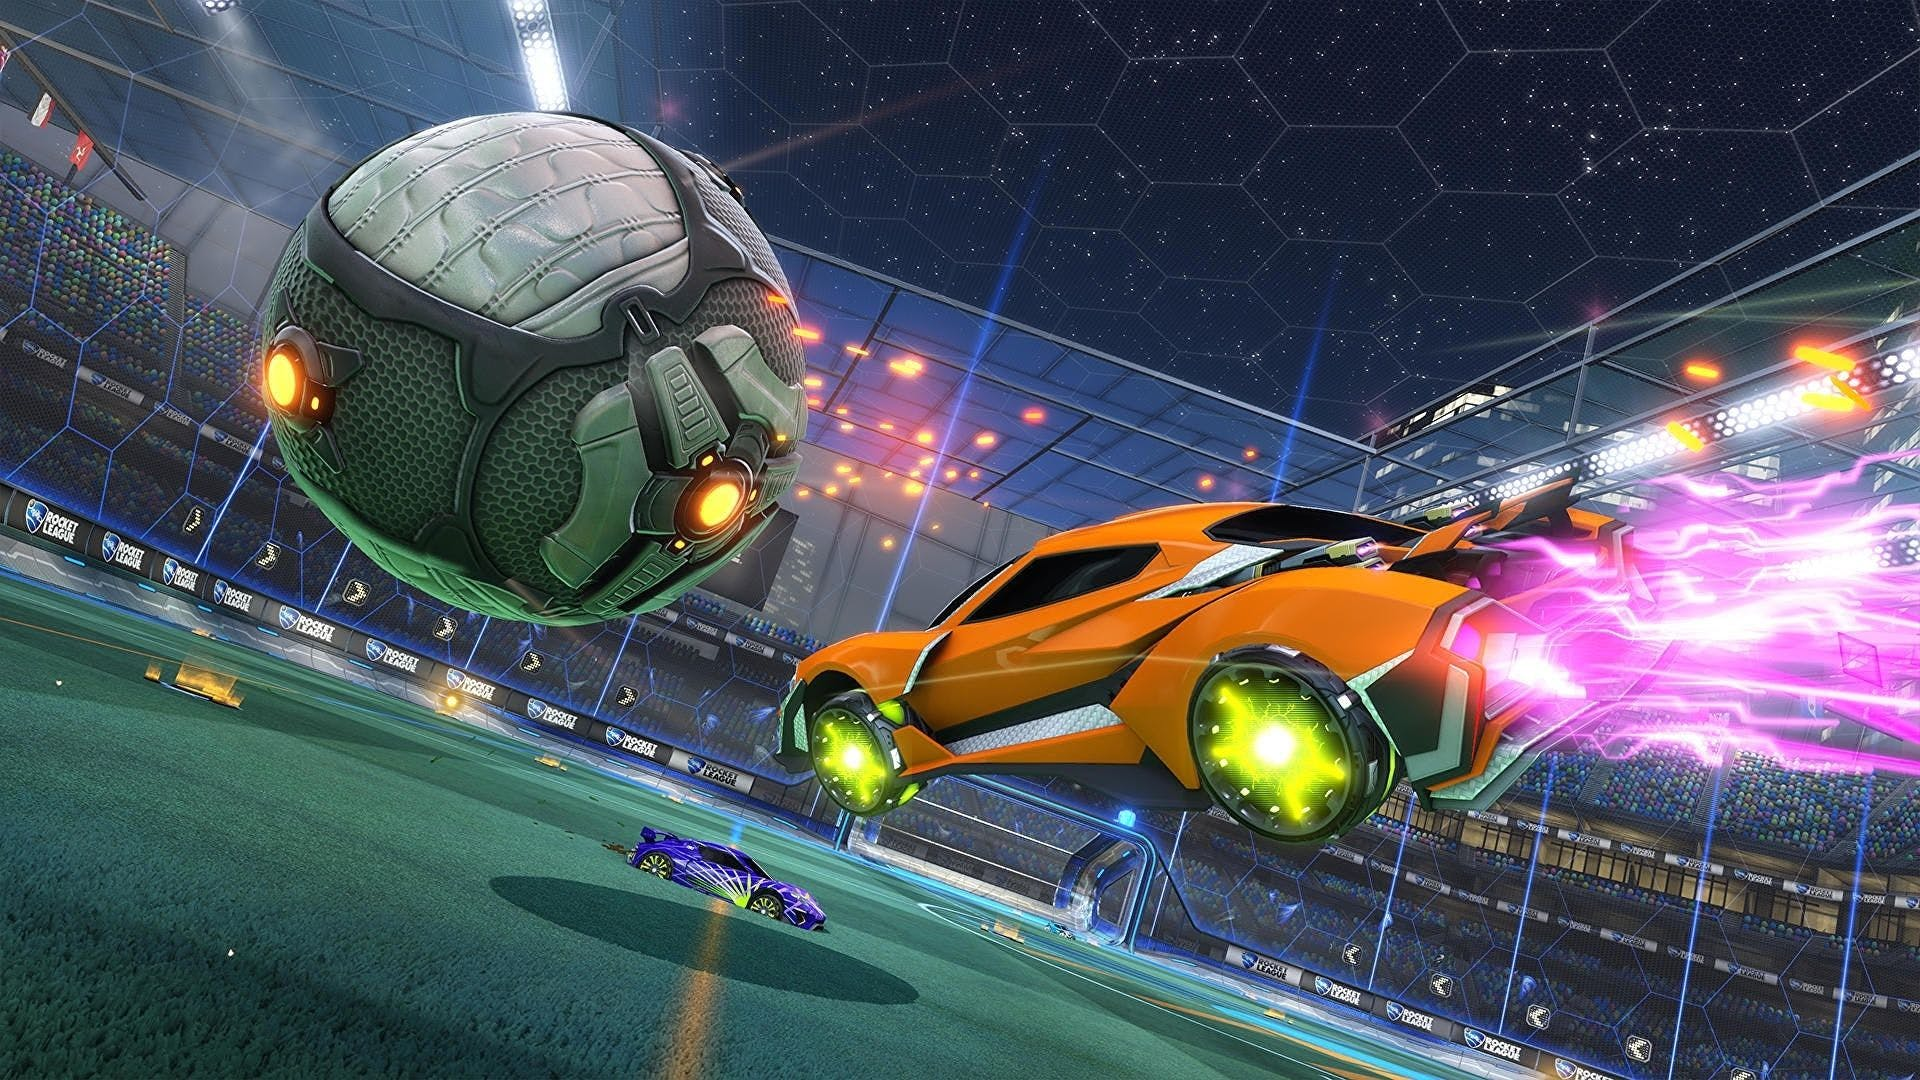 Animated car screenshot from the game Rocket League